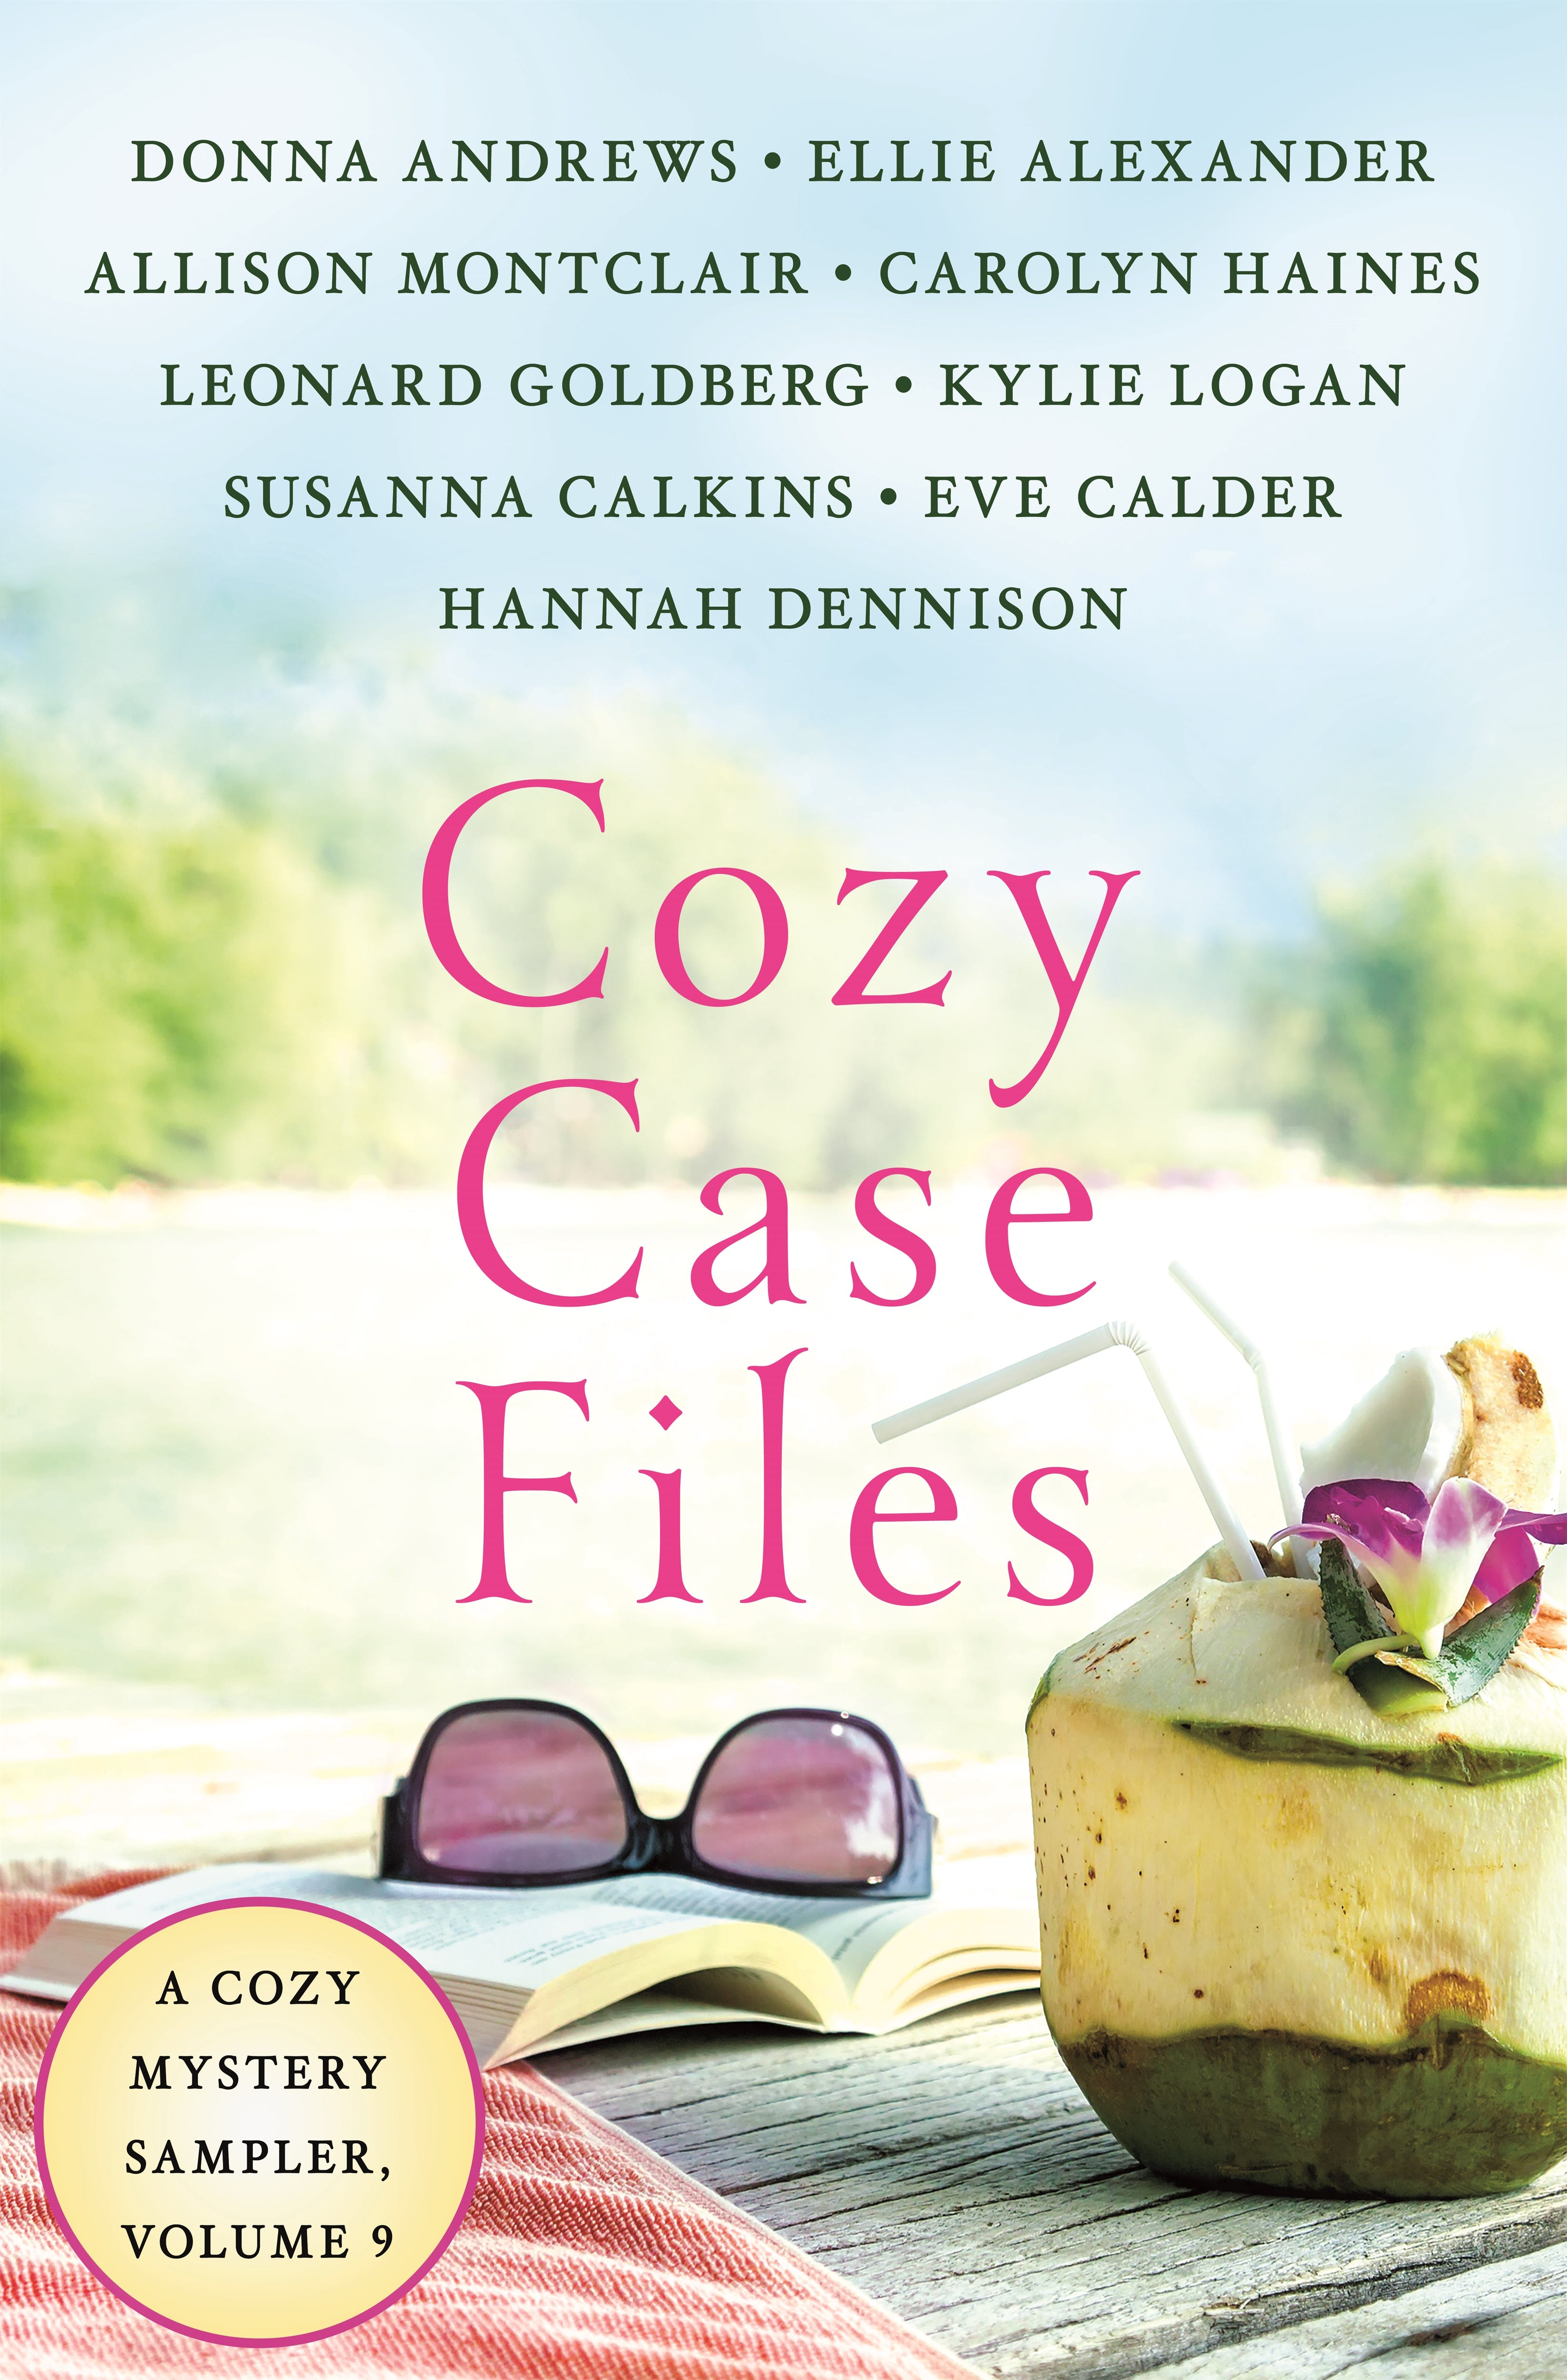 Image of Cozy Case Files, A Cozy Mystery Sampler, Volume 9